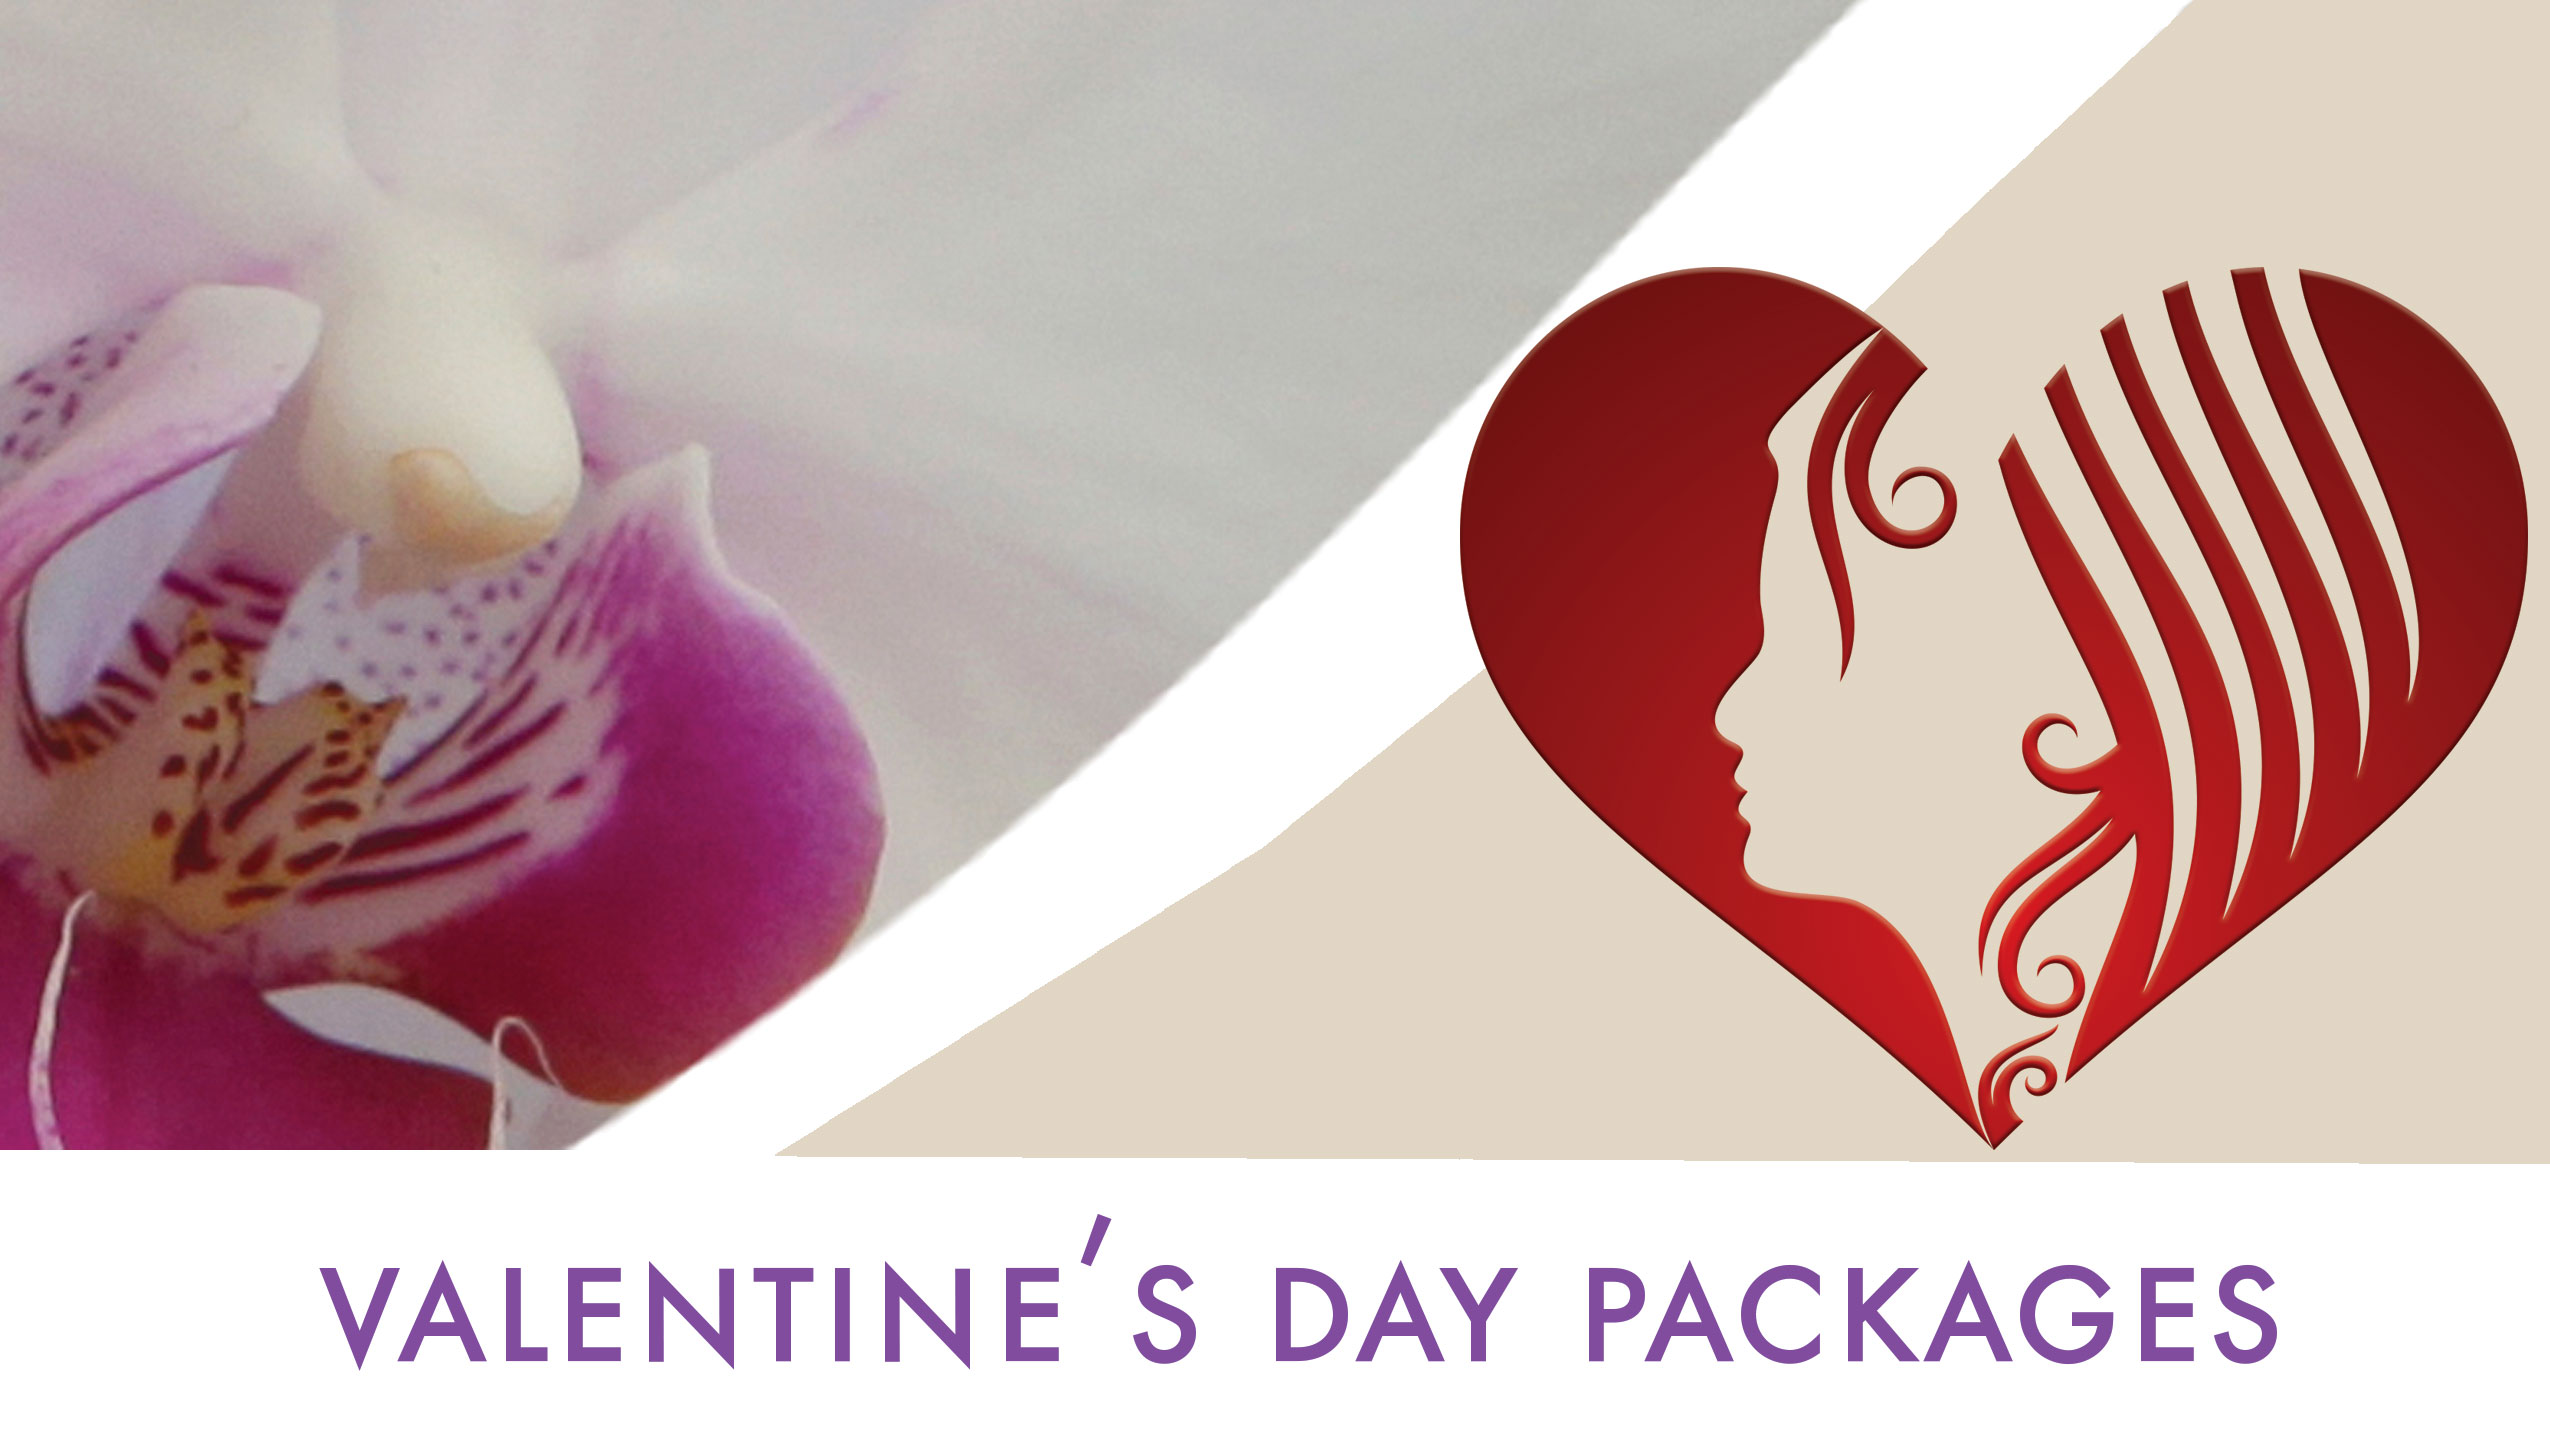 valentines day spa packages for your sweetheart - Valentines Day Spa